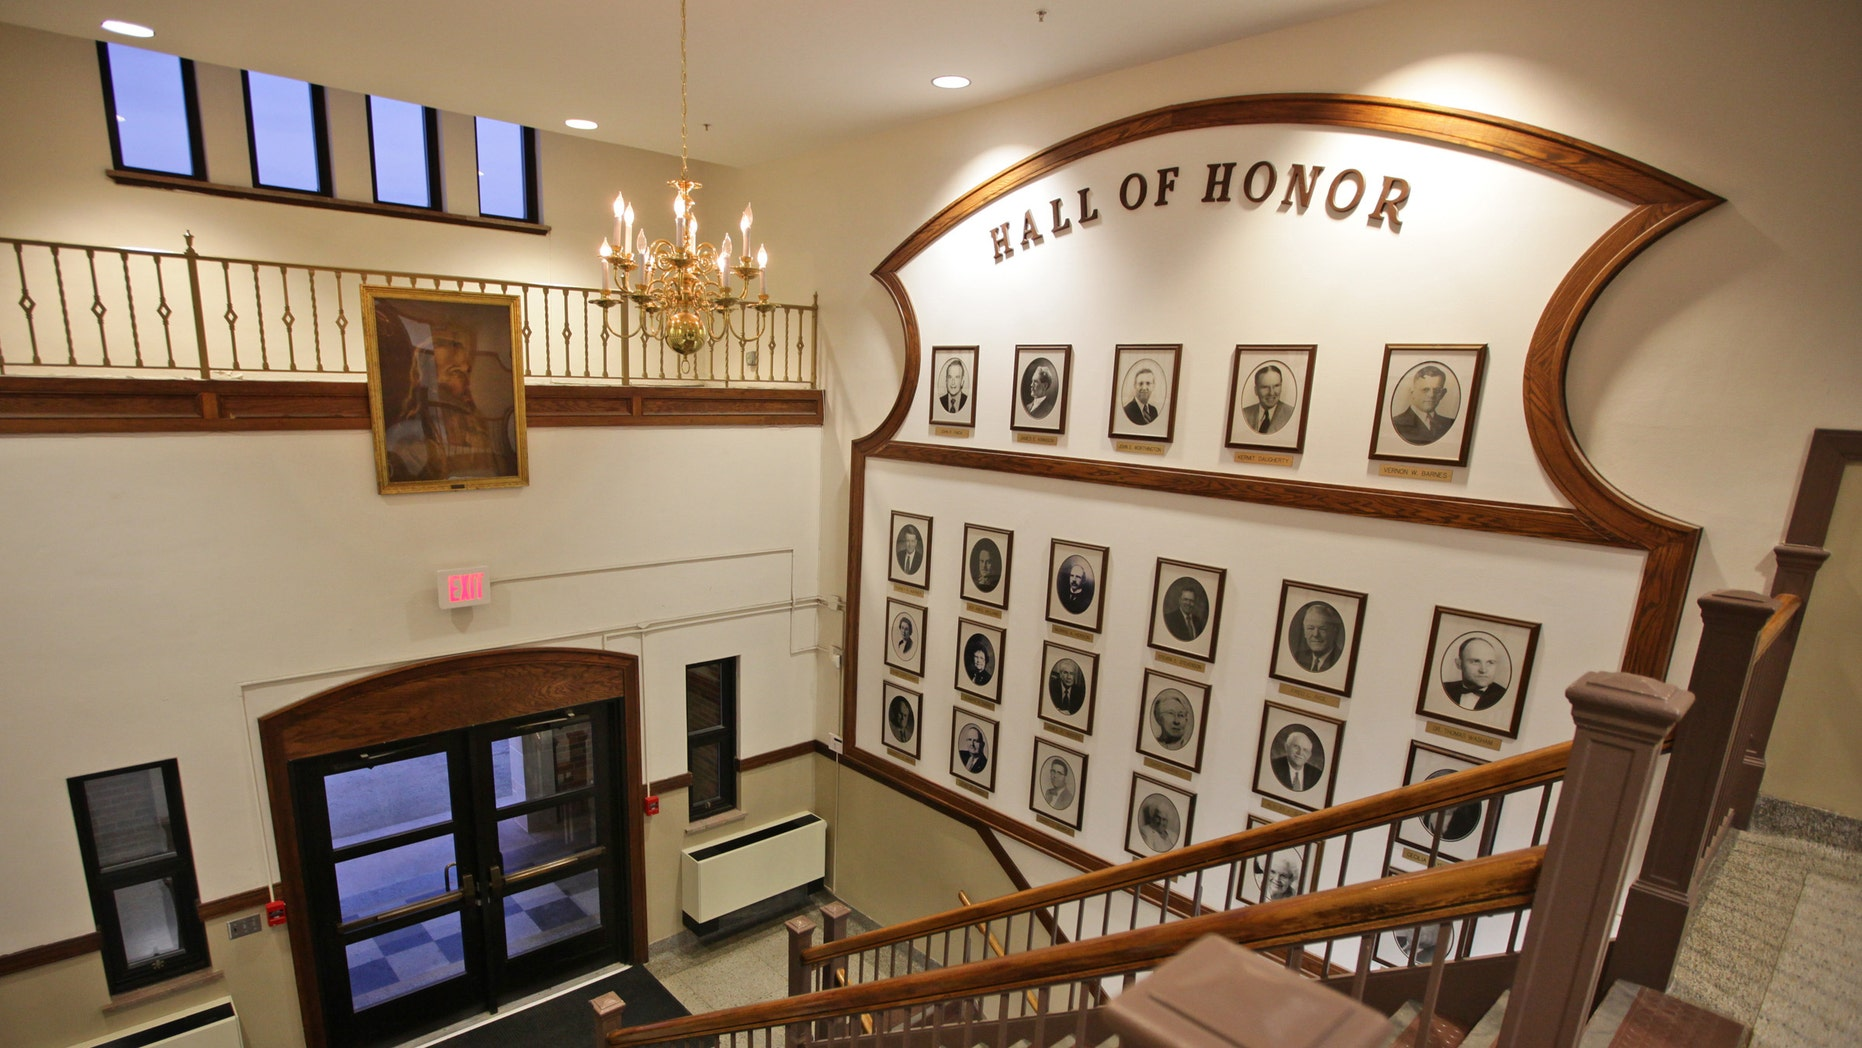 """Feb. 12, 2013: This photo shows a painting of Jesus Christ, upper left, hanging above an entrance to Jackson Middle School in Jackson, Ohio, next to a """"Hall of Honor"""" showing famous Jackson residents and school alumni."""